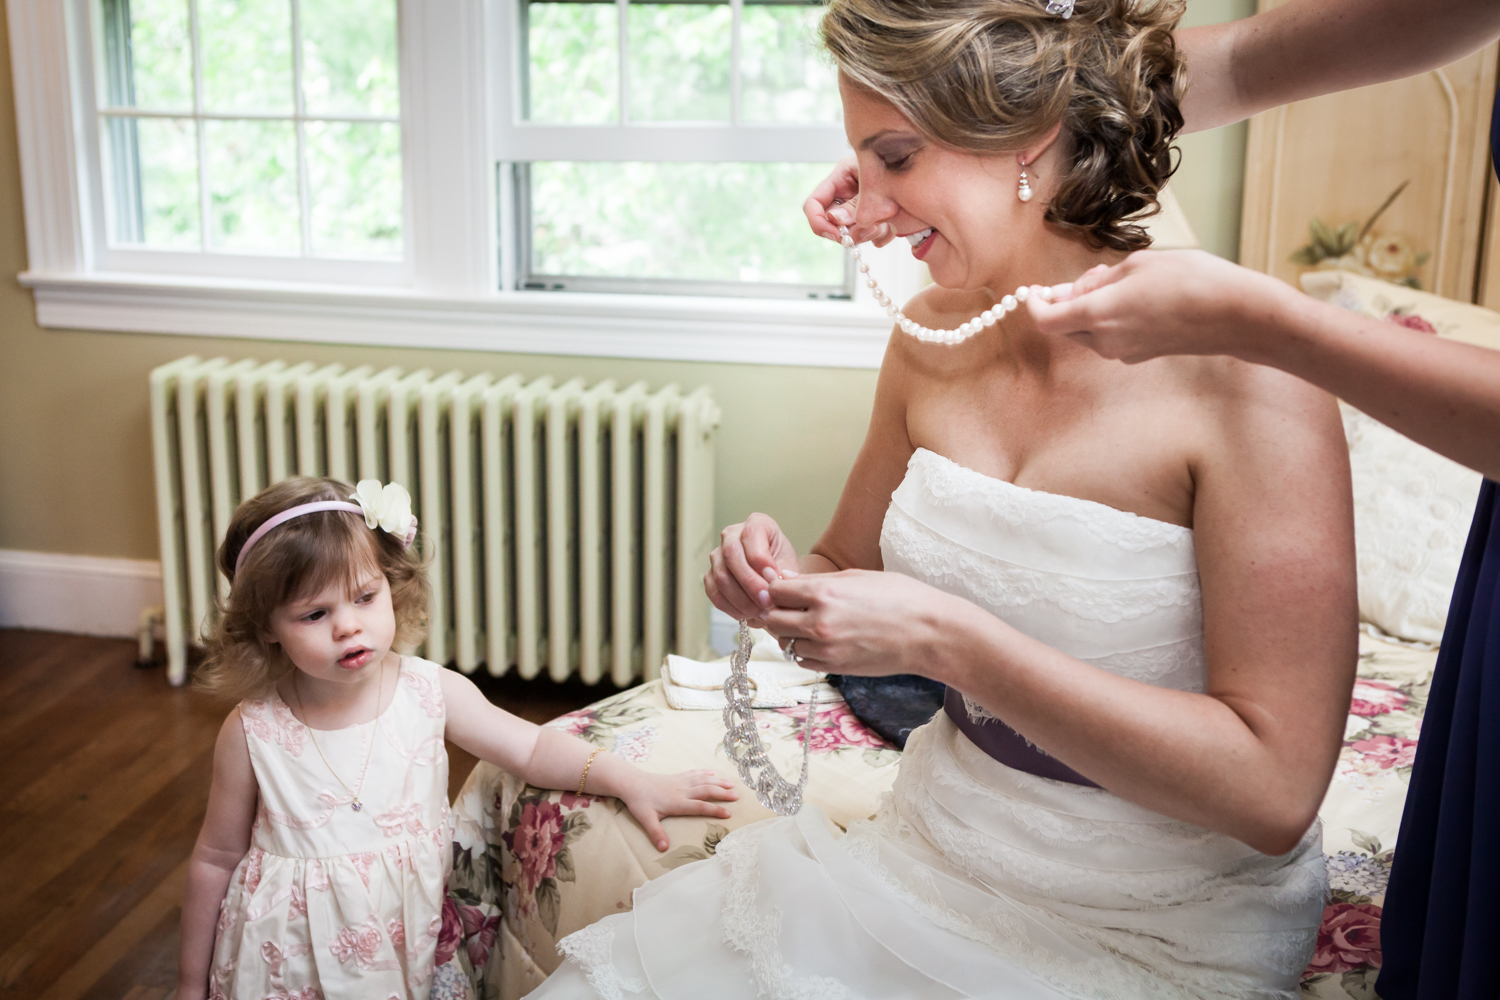 Little girl watching bride put on jewelry